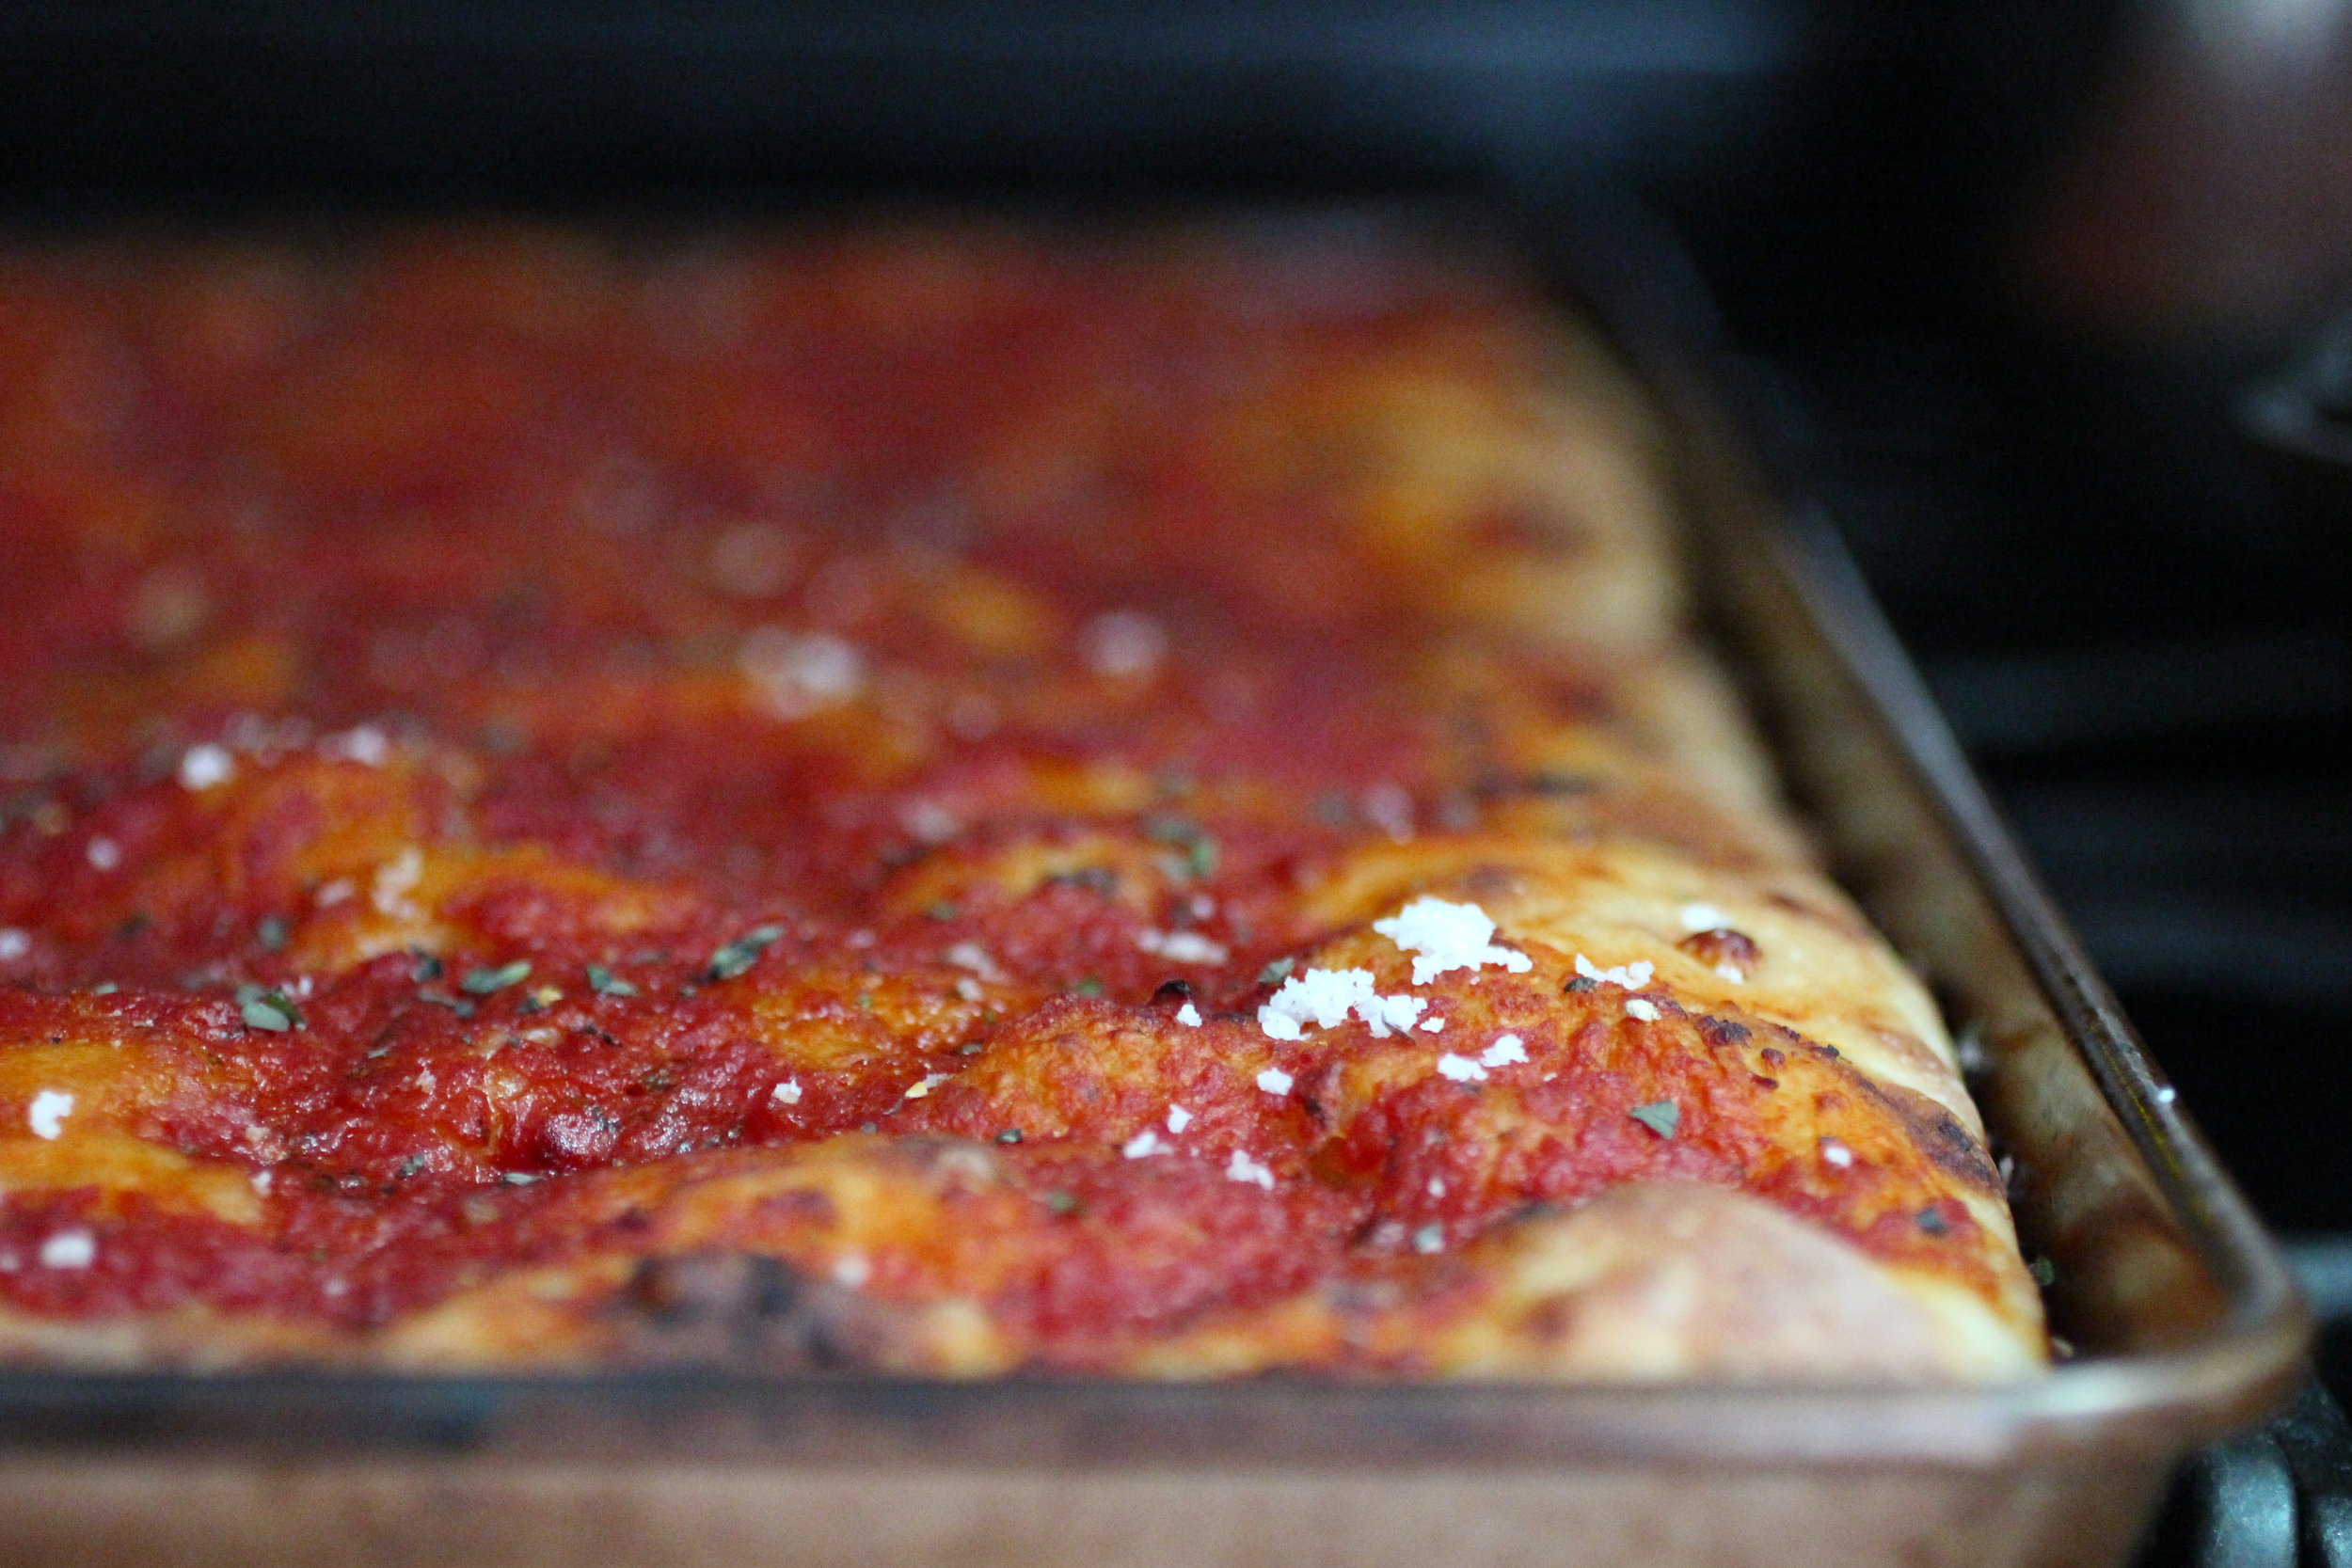 Savoie Organic Farm, Viereck Farms, and Muth Family Organic Farm have tomatoes for your philly-style tomato pie.